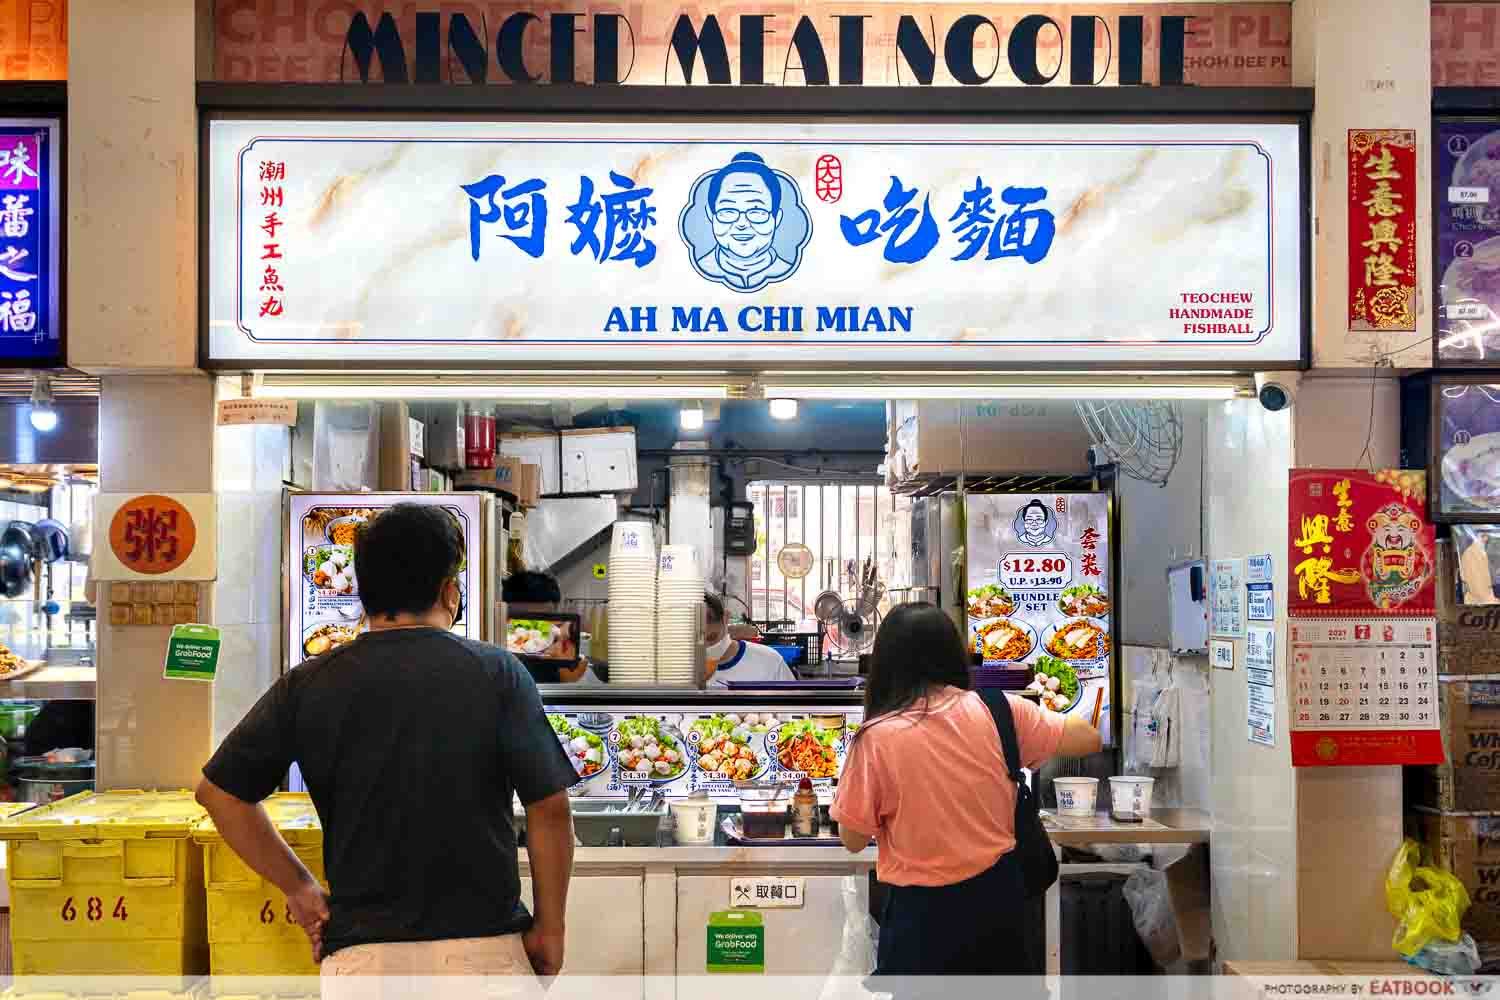 ah ma chi mian stall front